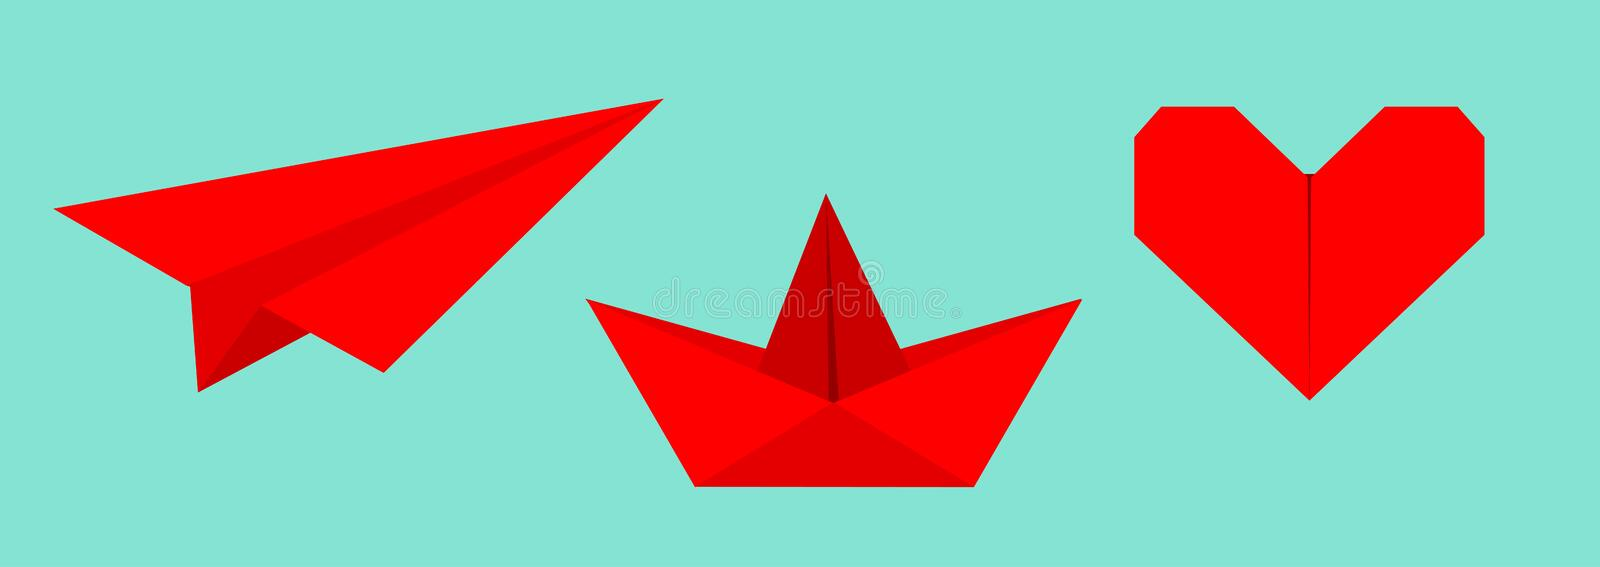 Origami paper plane, boat ship, heart icon set. Red color. Handmade toy line. Flat design. Cute love symbol. Blue background. Isolated. Vector illustration stock illustration